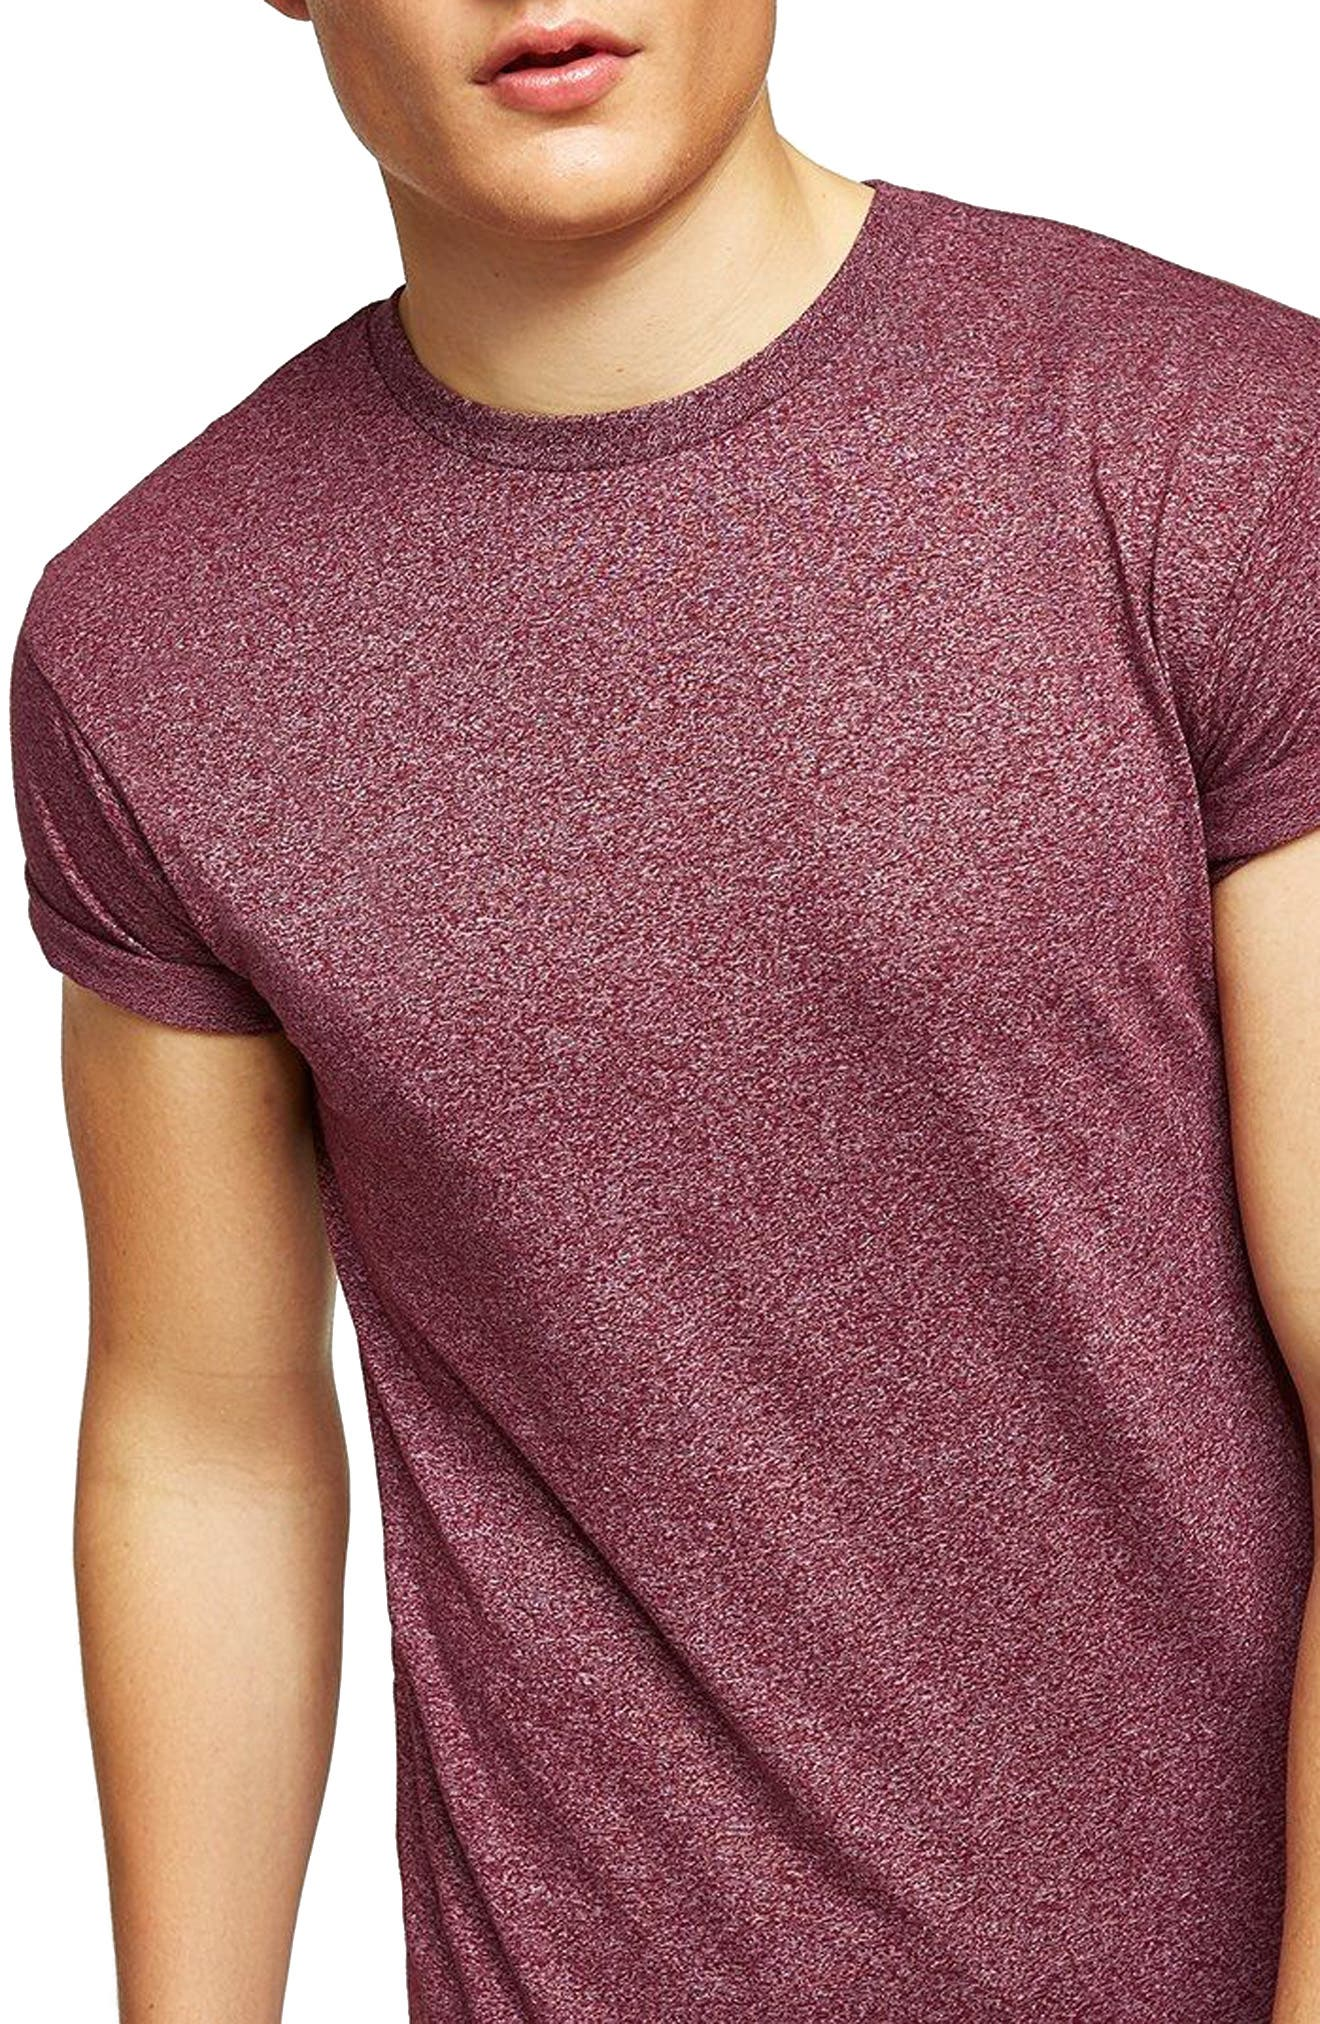 Muscle Fit Flecked T-Shirt,                         Main,                         color,